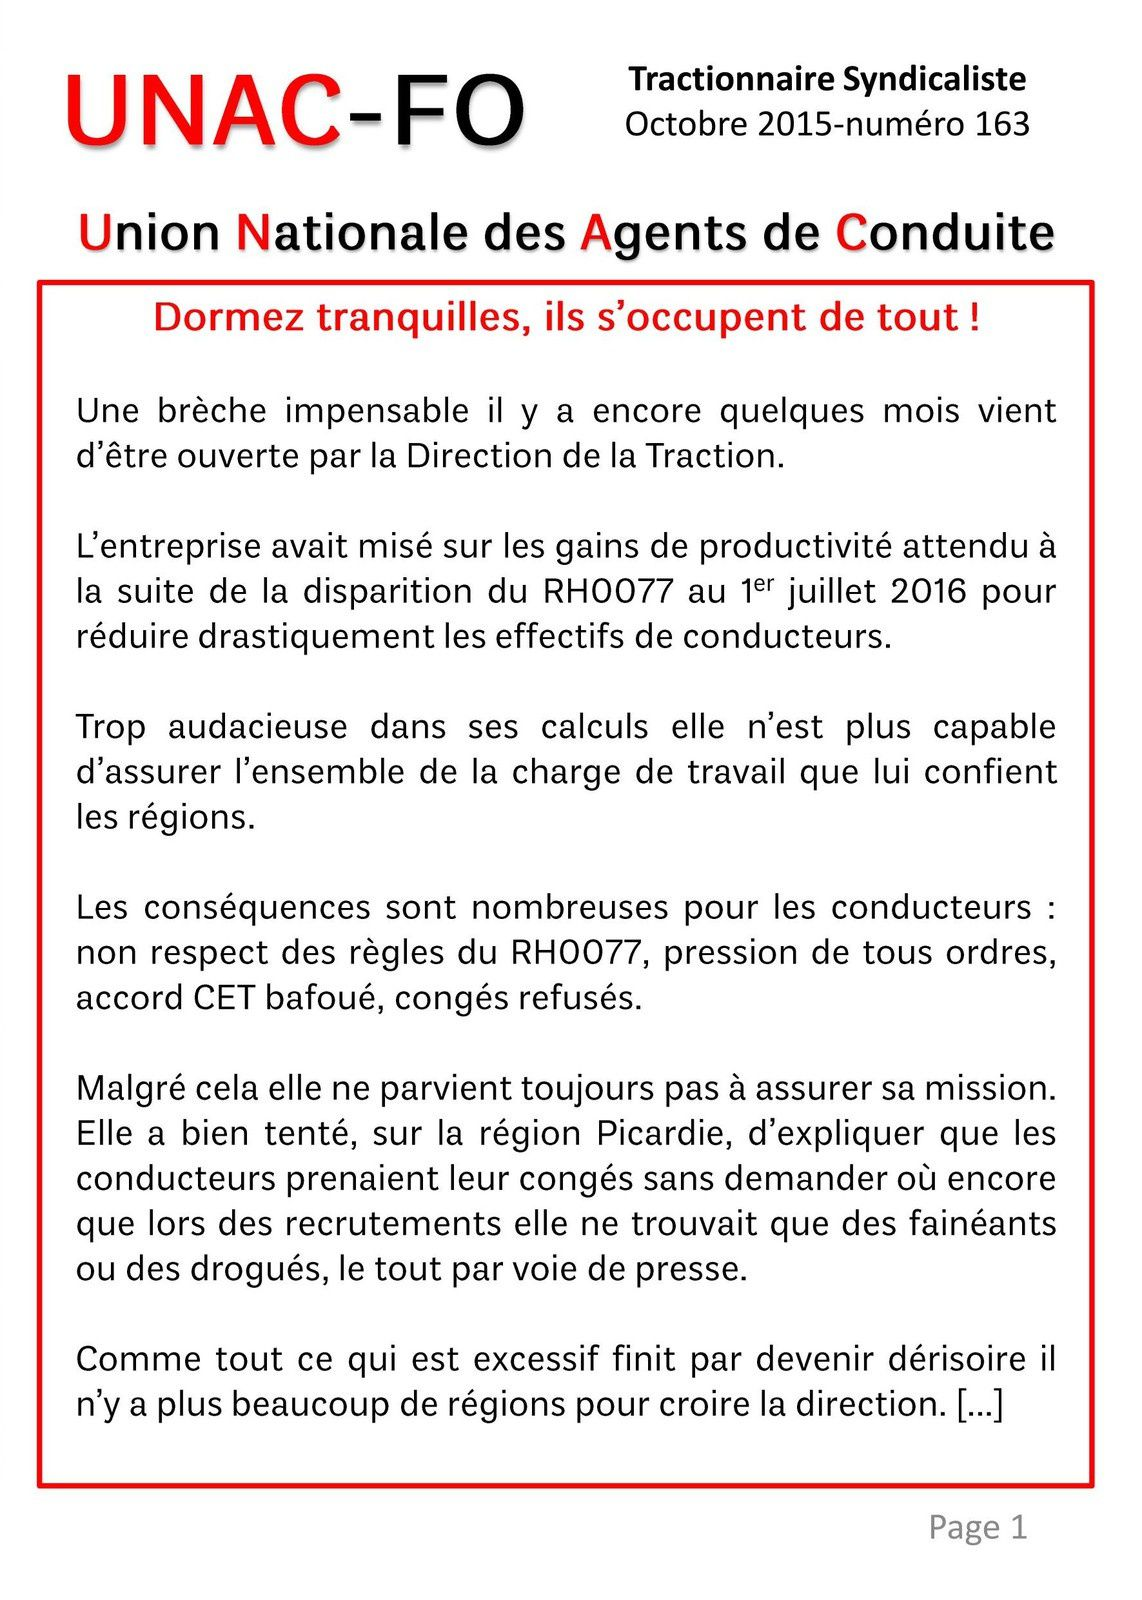 Tractionnaire Syndicaliste 07 10 2015